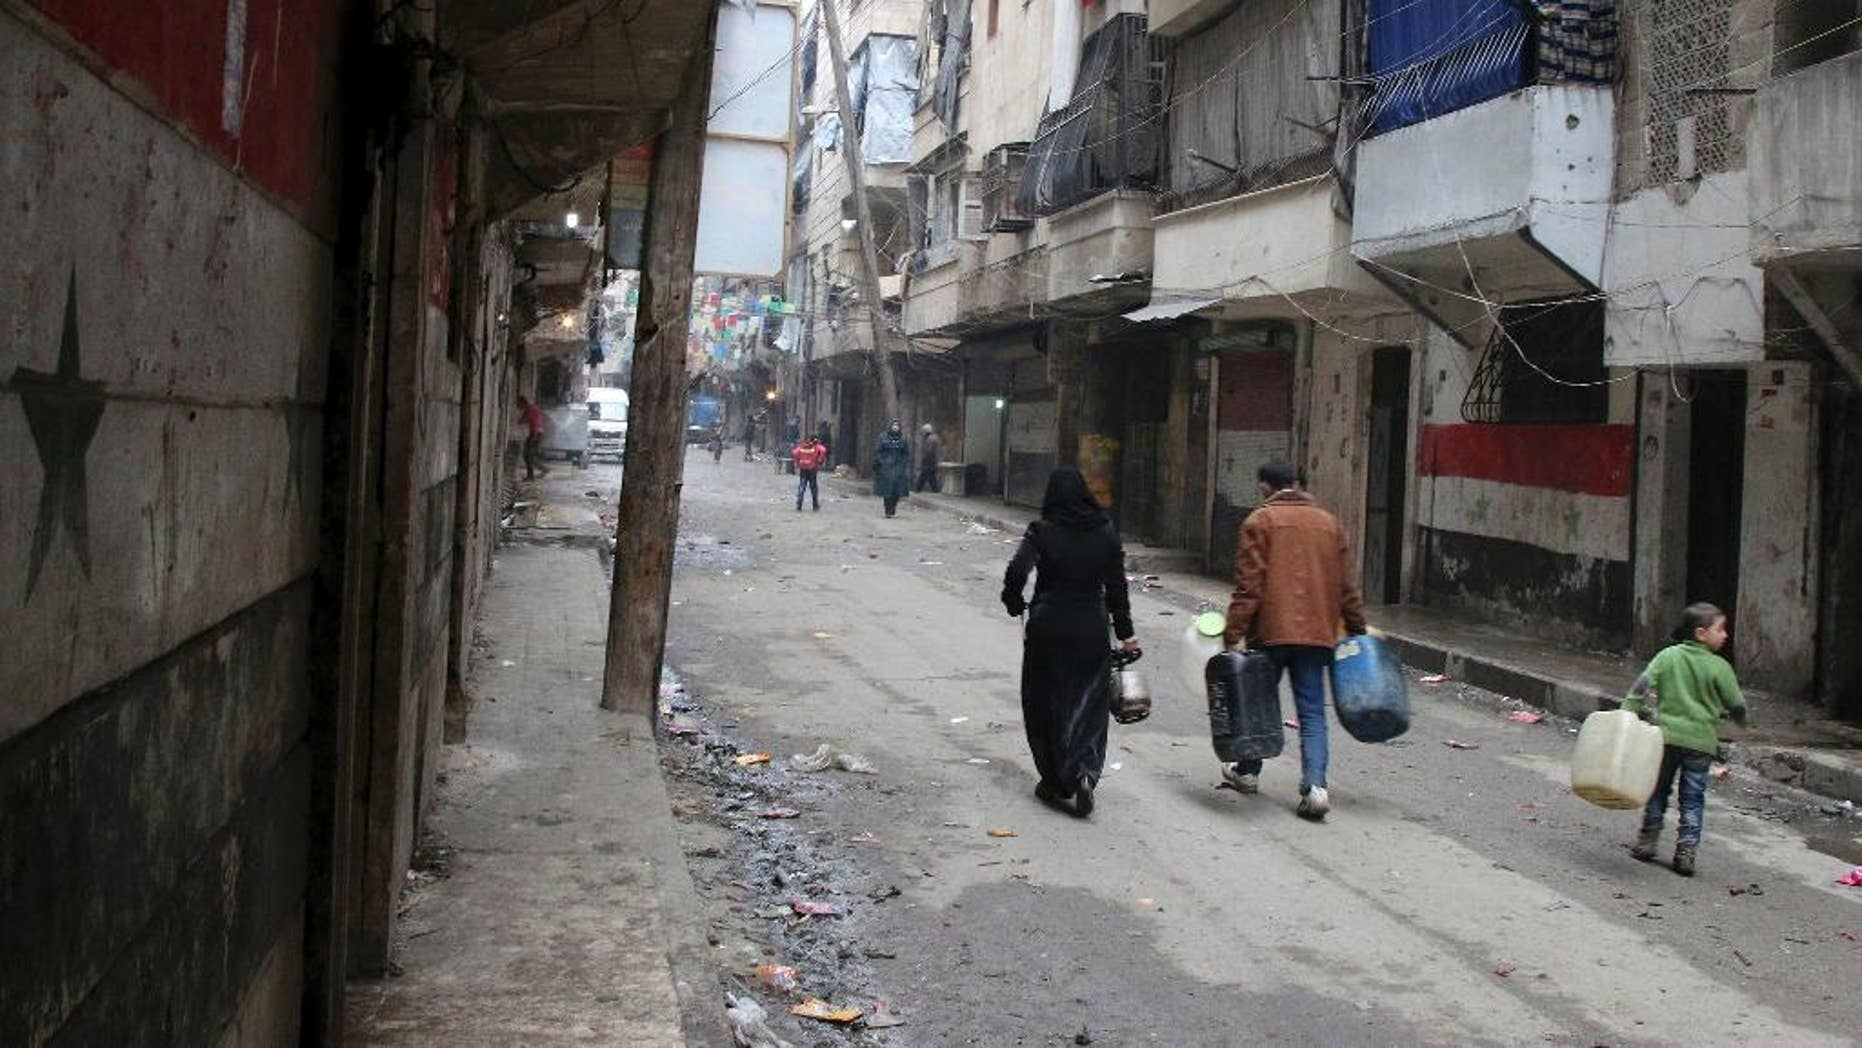 FILE -- In this February 11, 2016, file photo, civilians walk with containers for fuel and water in Aleppo, Syria. Dozens of State Department employees have endorsed an internal document that advocates U.S. military action to pressure Syria's government into accepting a ceasefire and engaging in peace talks, officials said Thursday. The position is at odds with U.S. policy. (Alexander Kots/Komsomolskaya Pravda via AP, File)